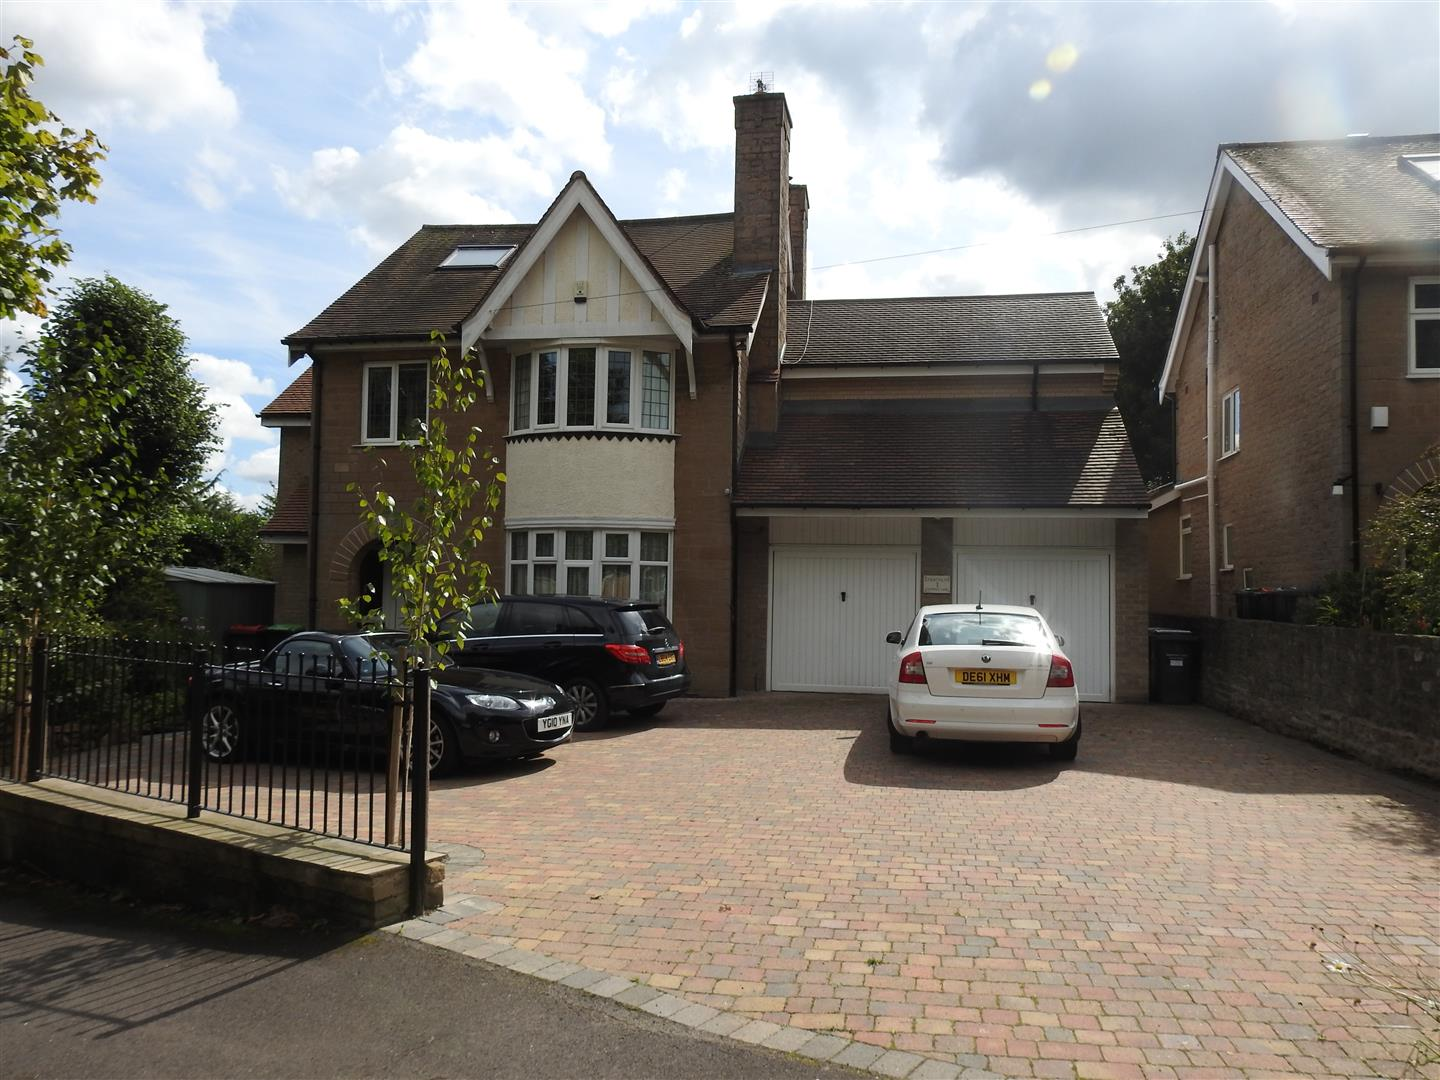 4 Bedrooms Detached House for sale in Common Lane, Hucknall, Nottingham